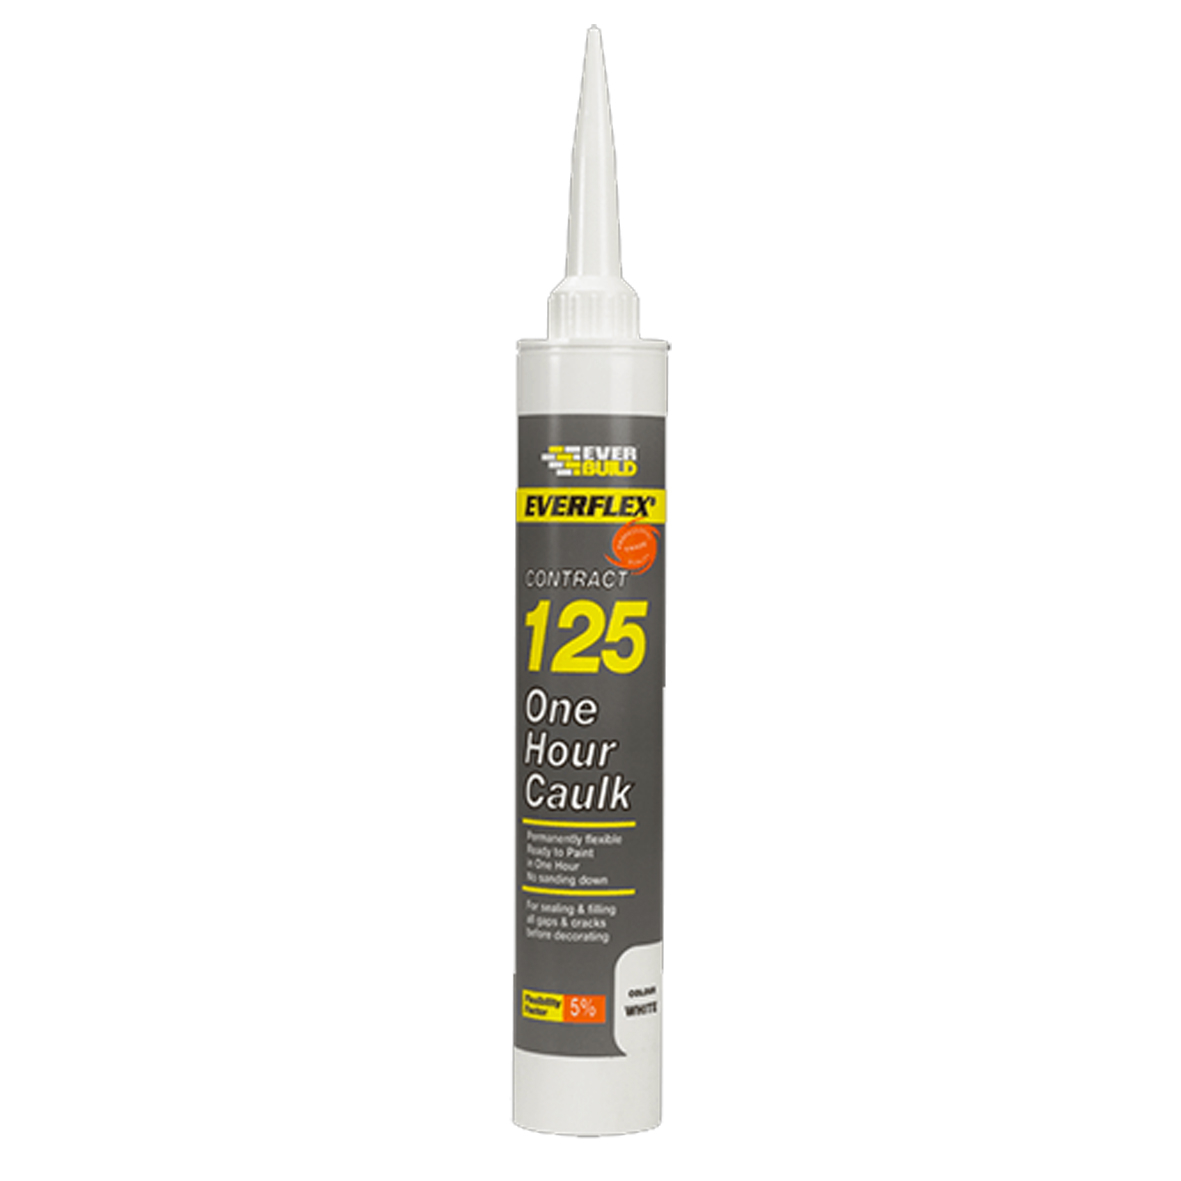 Everbuild Everflex 125 One Hour Caulk 380ml White